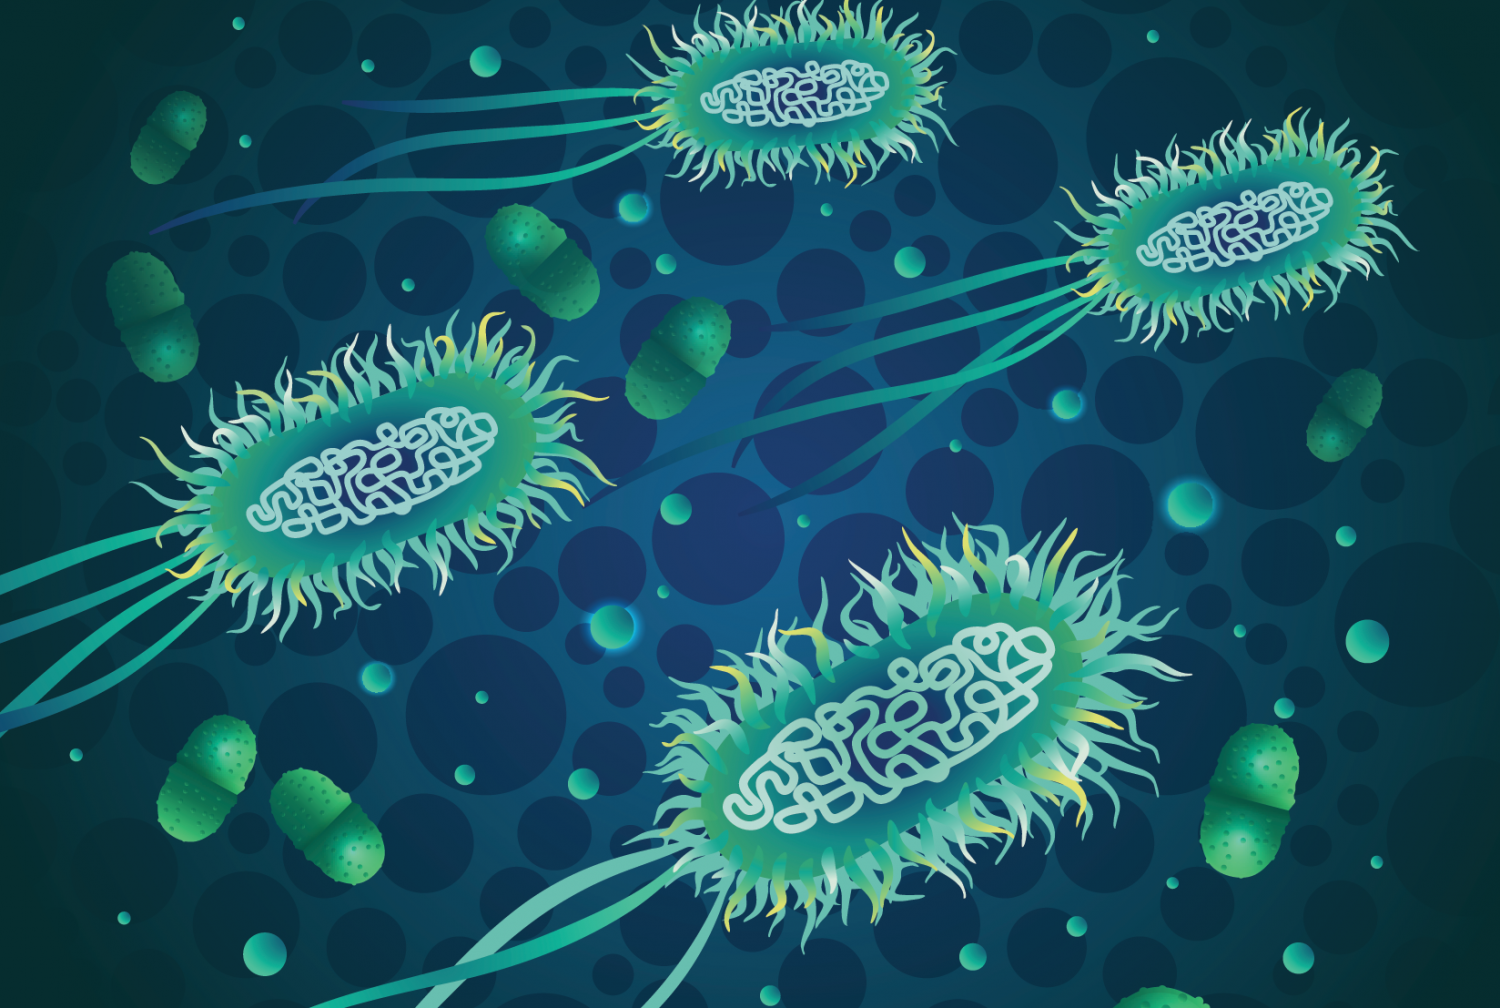 Blue and green illustration of e coli bacterium